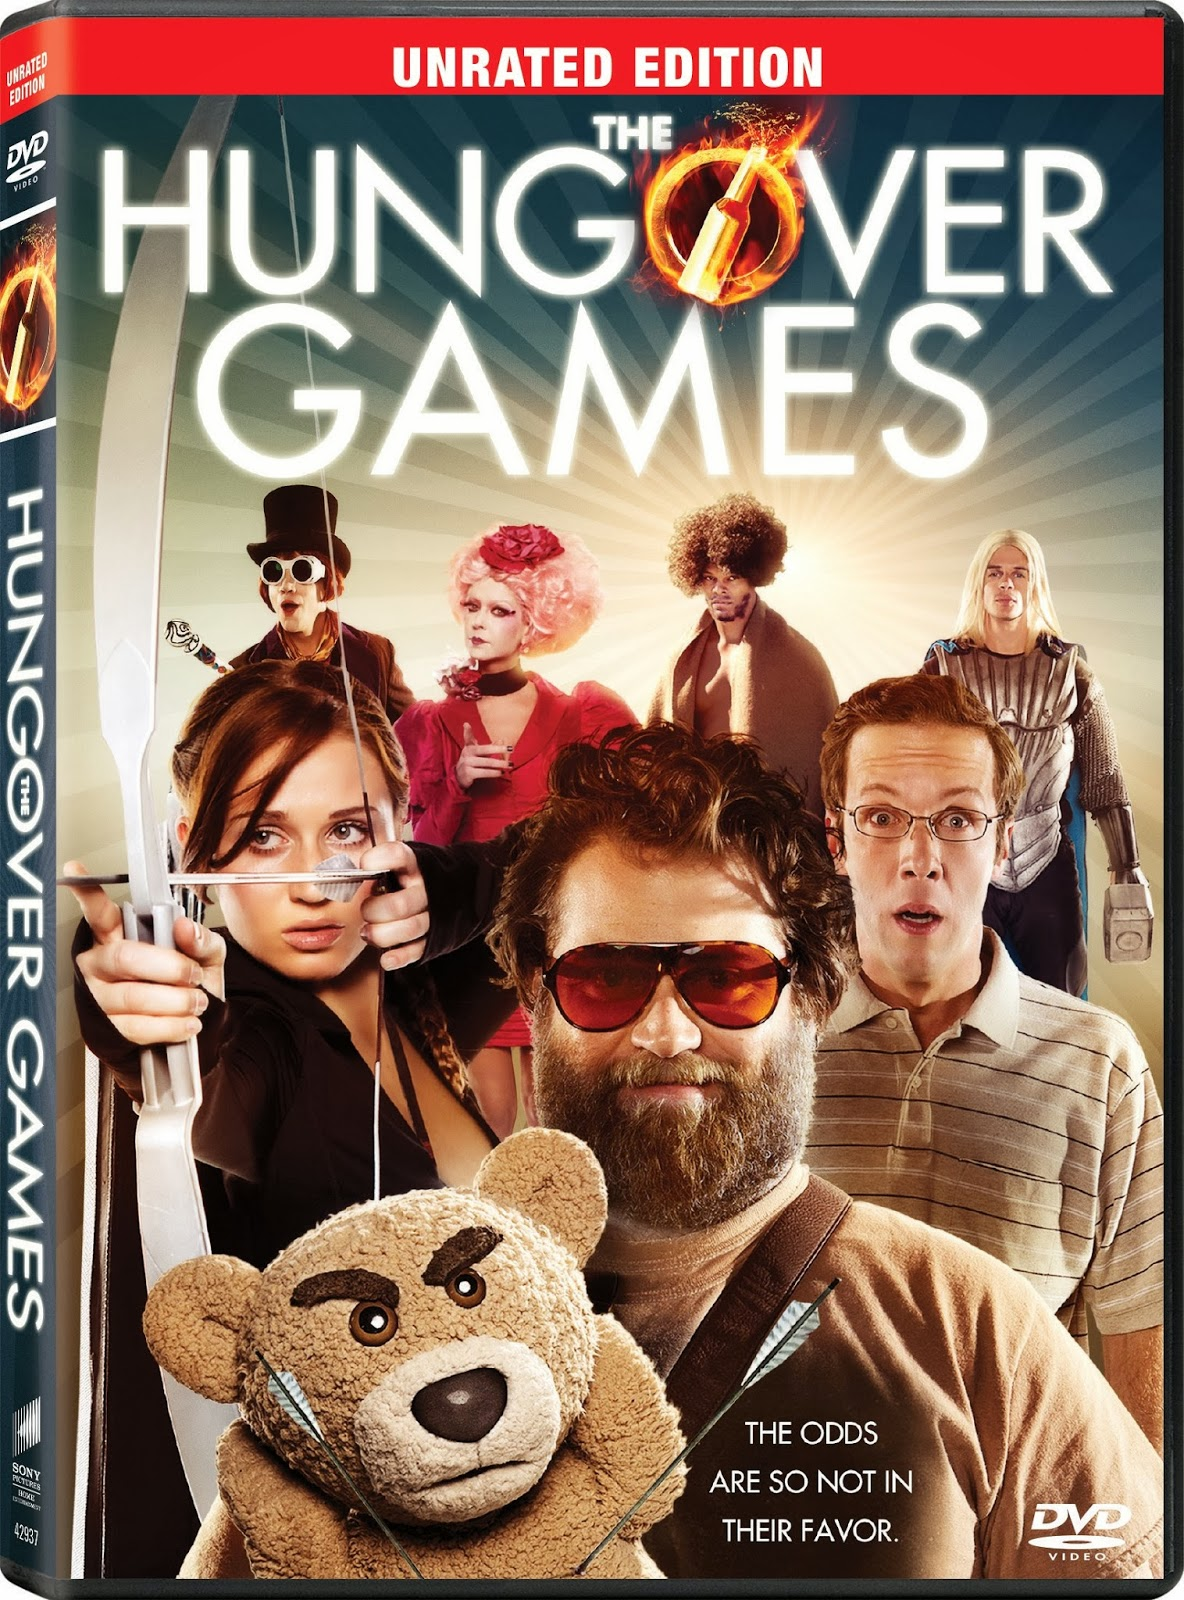 The Hungover Games (2014) UNRATED 720p